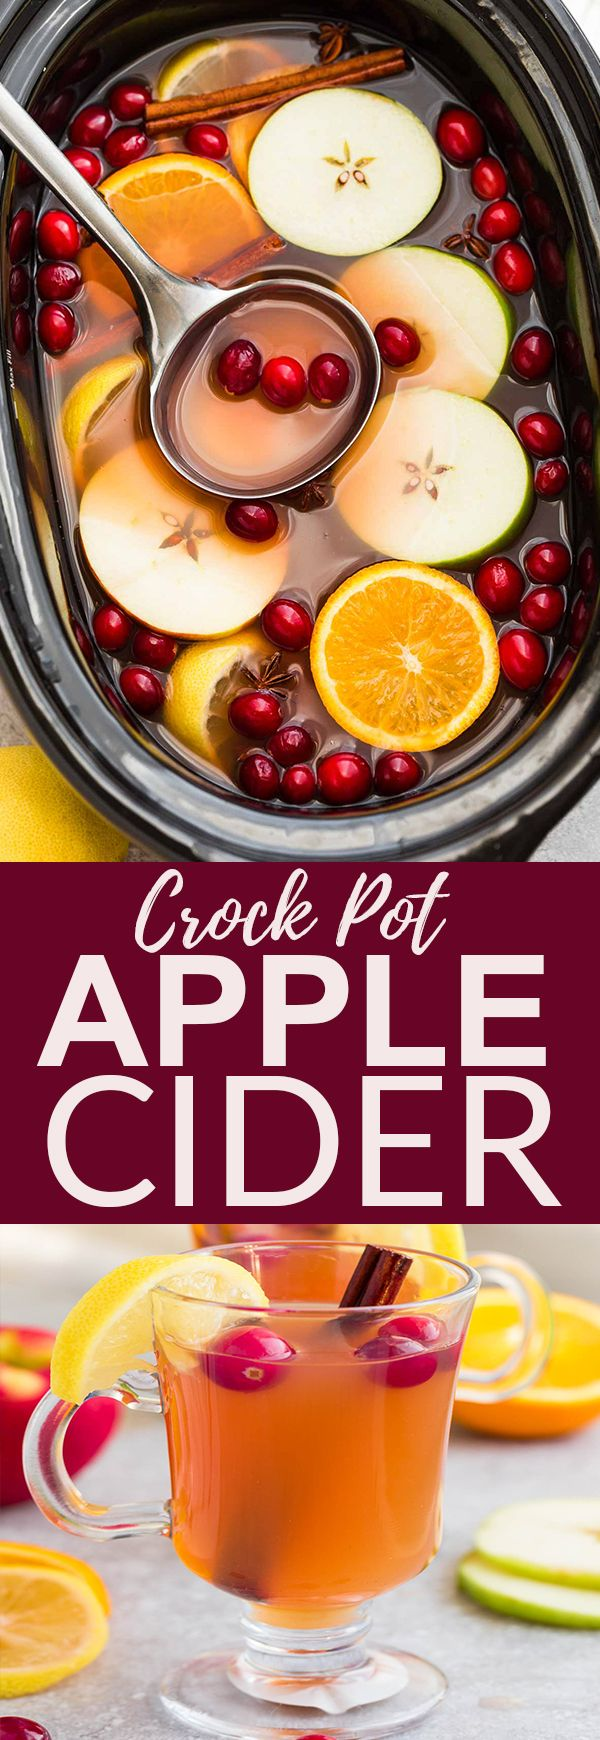 This Crock Pot Apple Cider Recipe Is The Perfect Easy Drink For Fall And The Holiday Christmas Season Best Cider Recipe Apple Cider Recipe Slow Cooker Apples